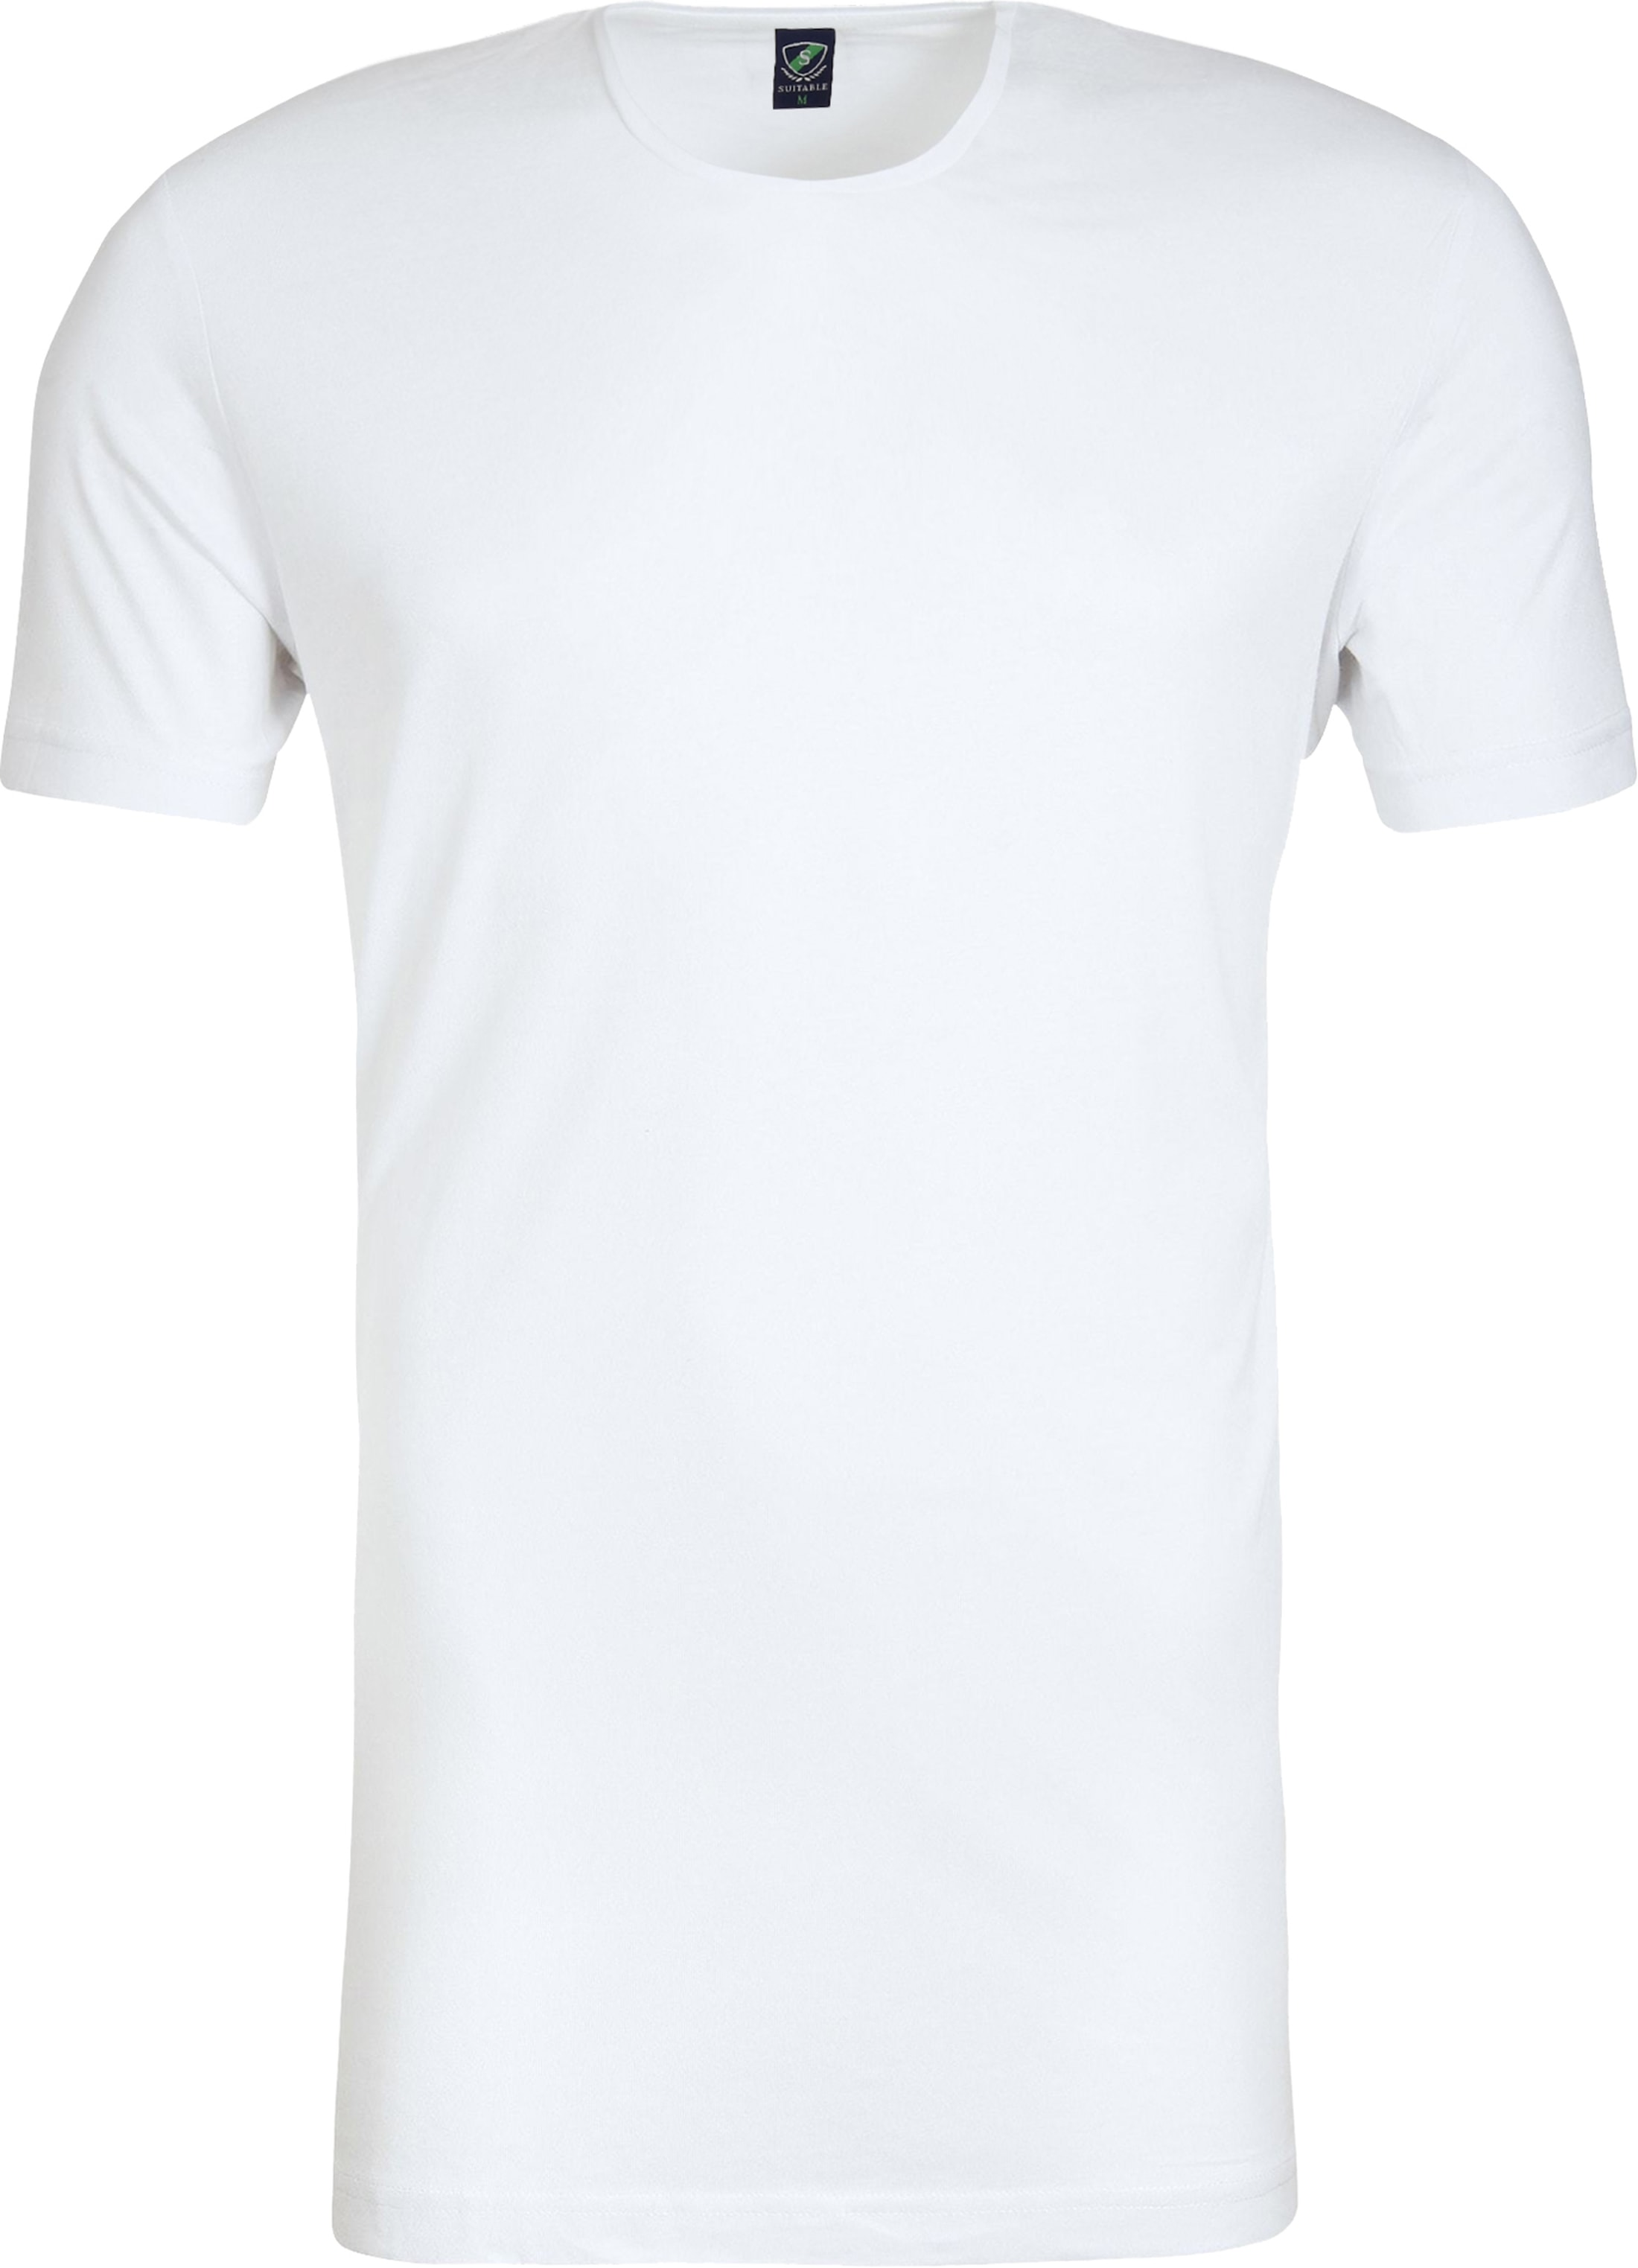 O-Neck 6-Pack Bamboo T-shirts